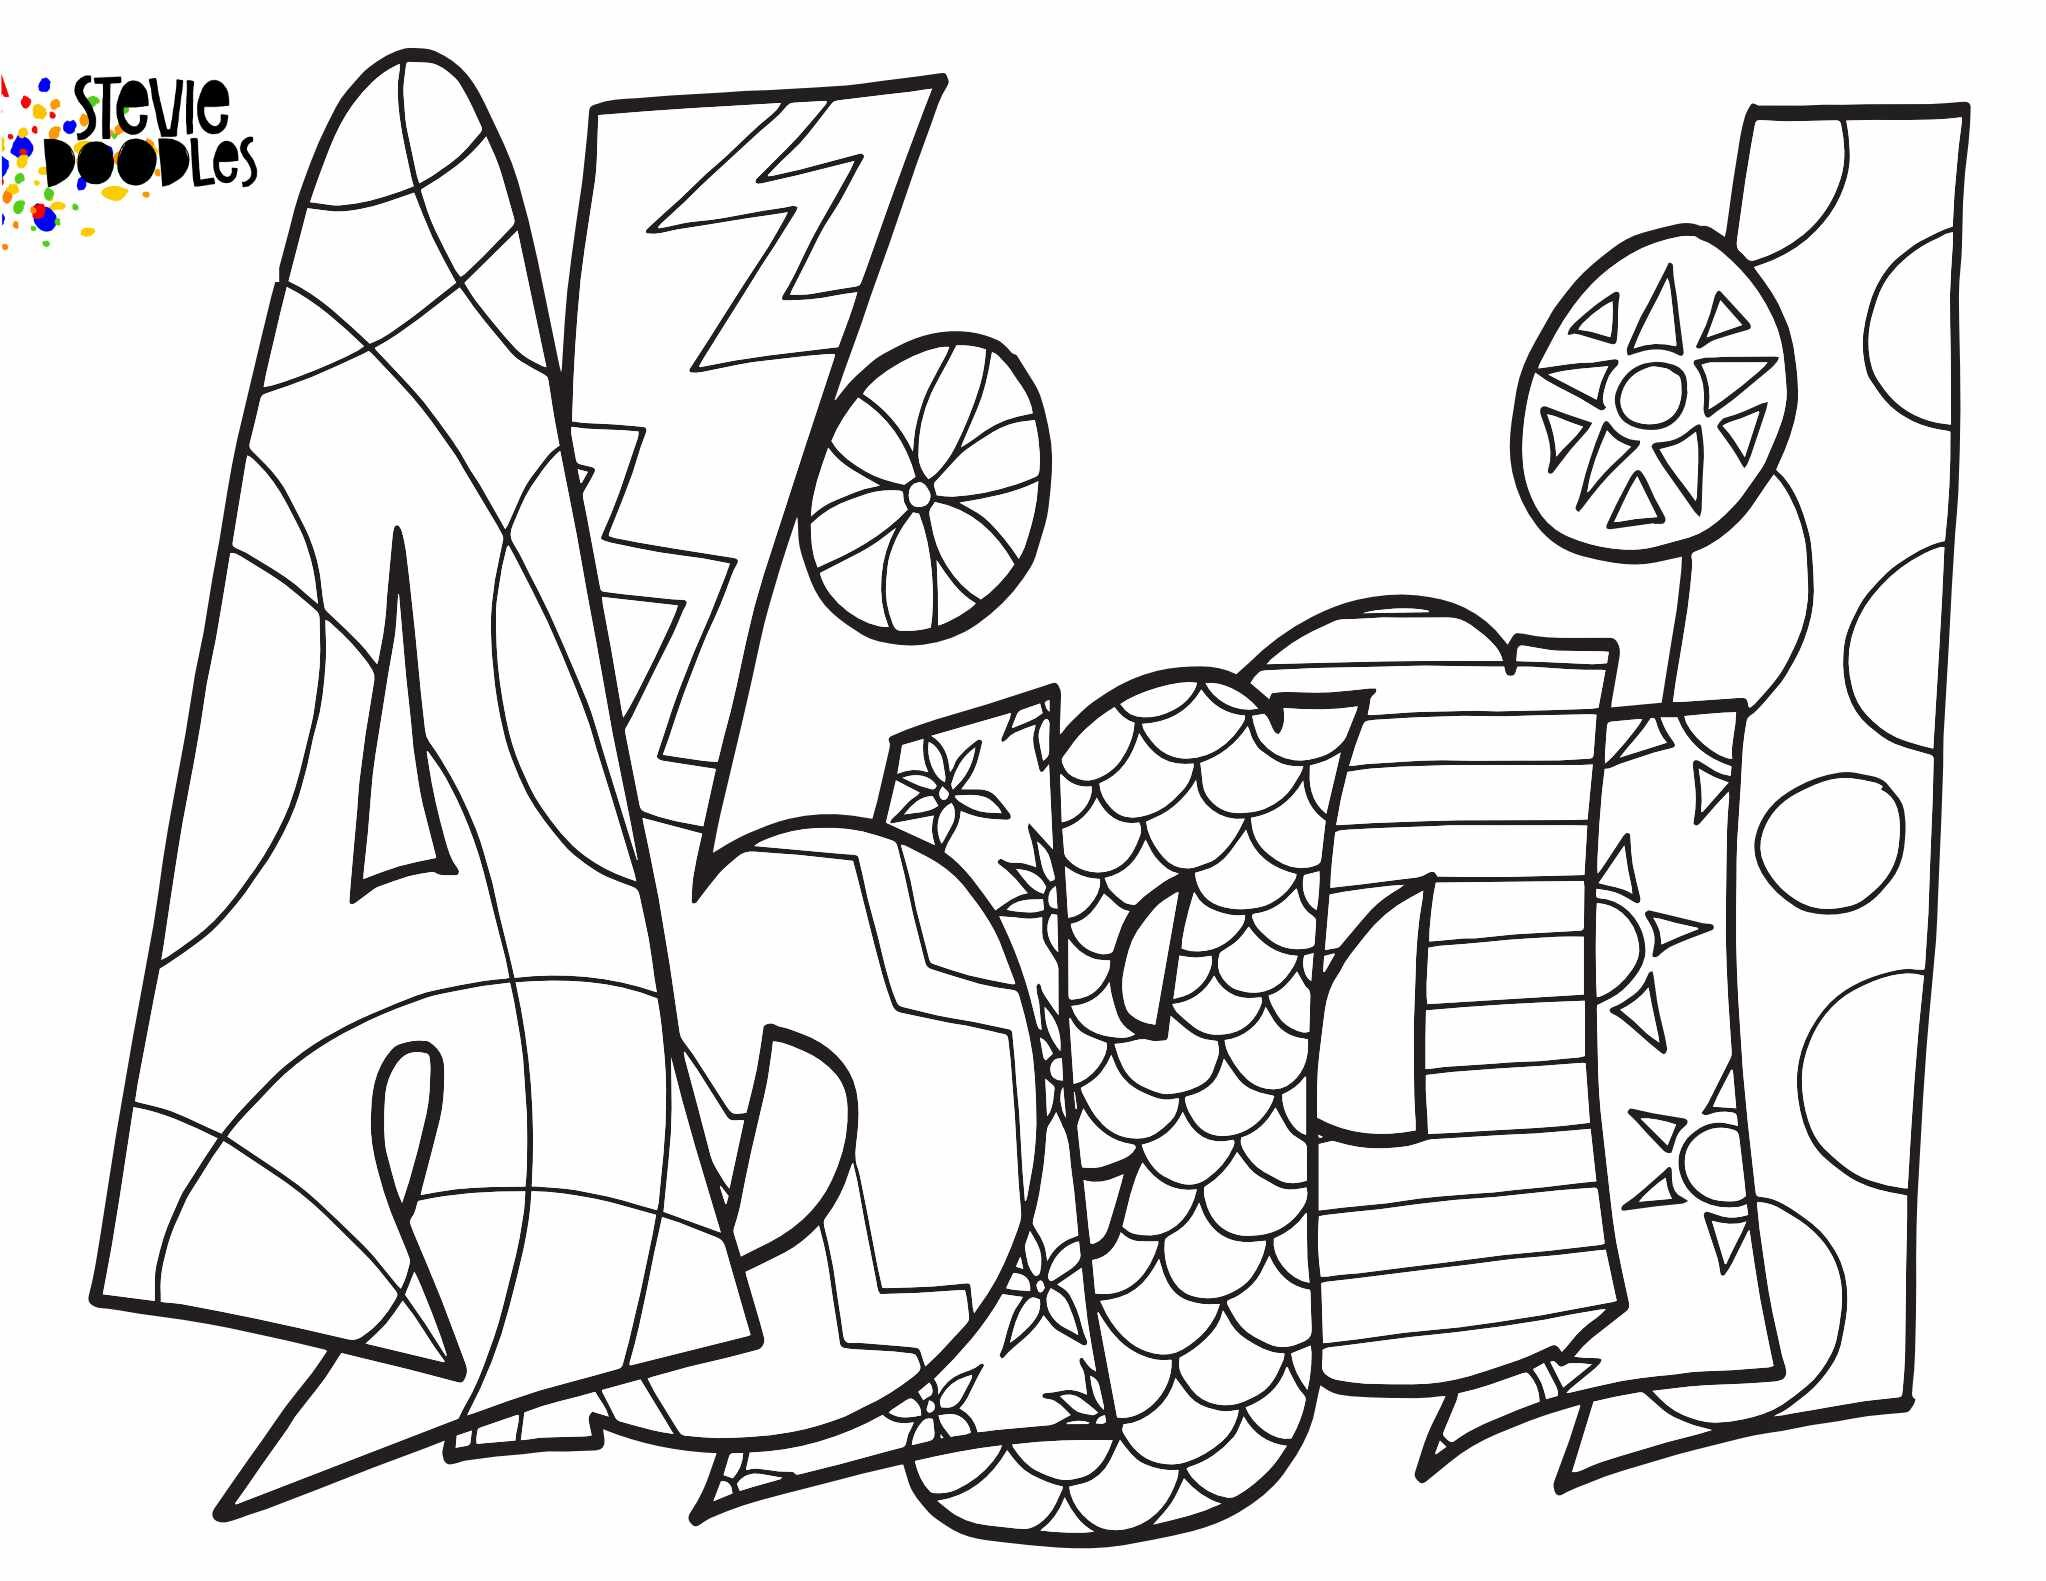 ABIGAIL - Free Printable Coloring Page — Stevie Doodles Free